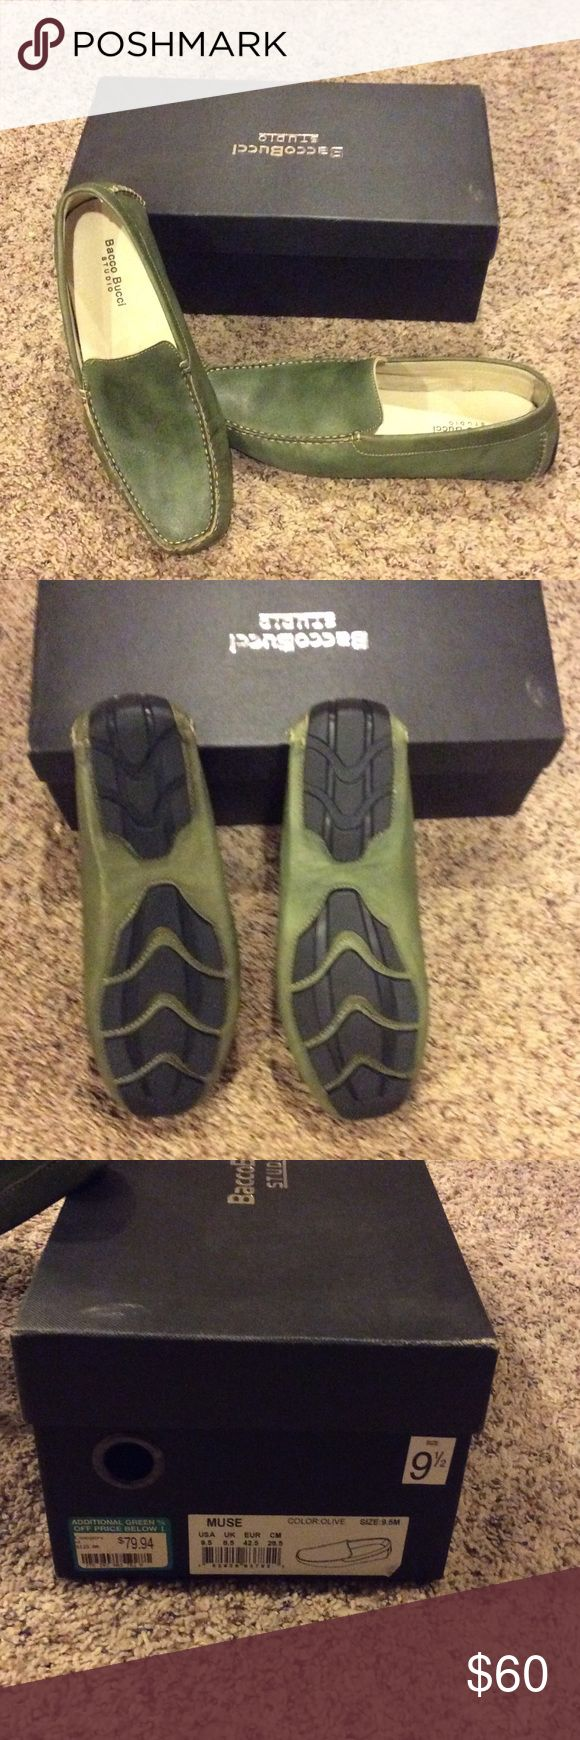 Men's driving loafer size 9.5 Brand new! Never worn. Olive green driving loafer by Bacco Bucci. Soft leather. Bacco Bucci Shoes Loafers & Slip-Ons